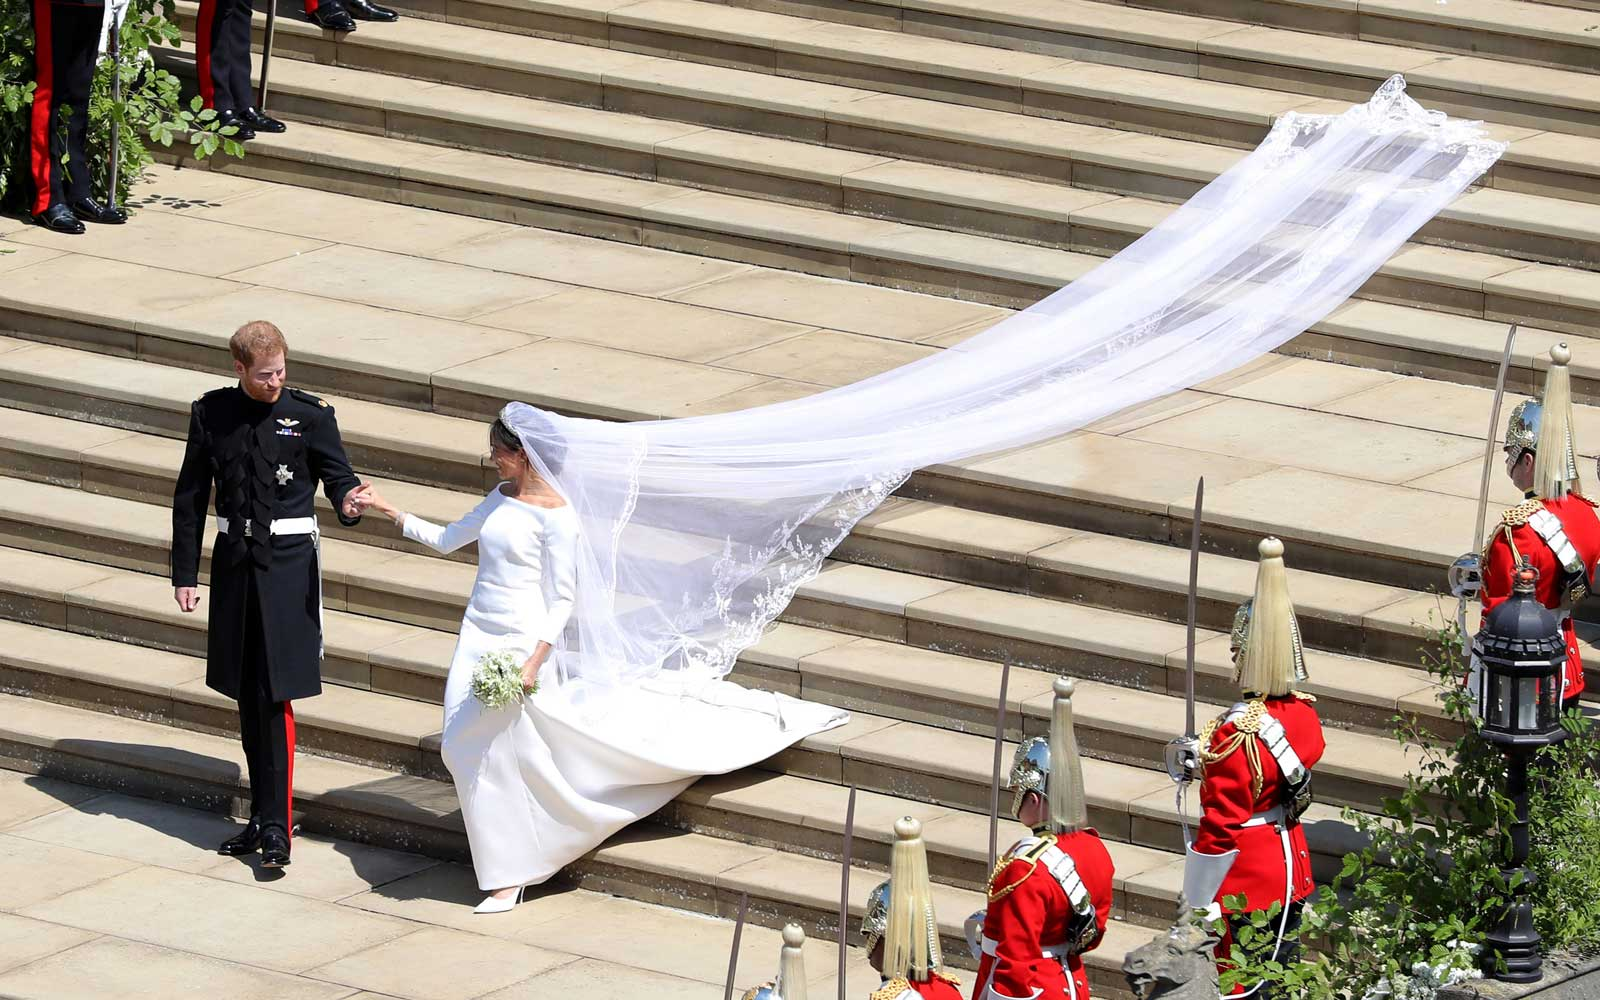 Meghan Markle's Stunning Givenchy Wedding Dress Is on Display in Scotland